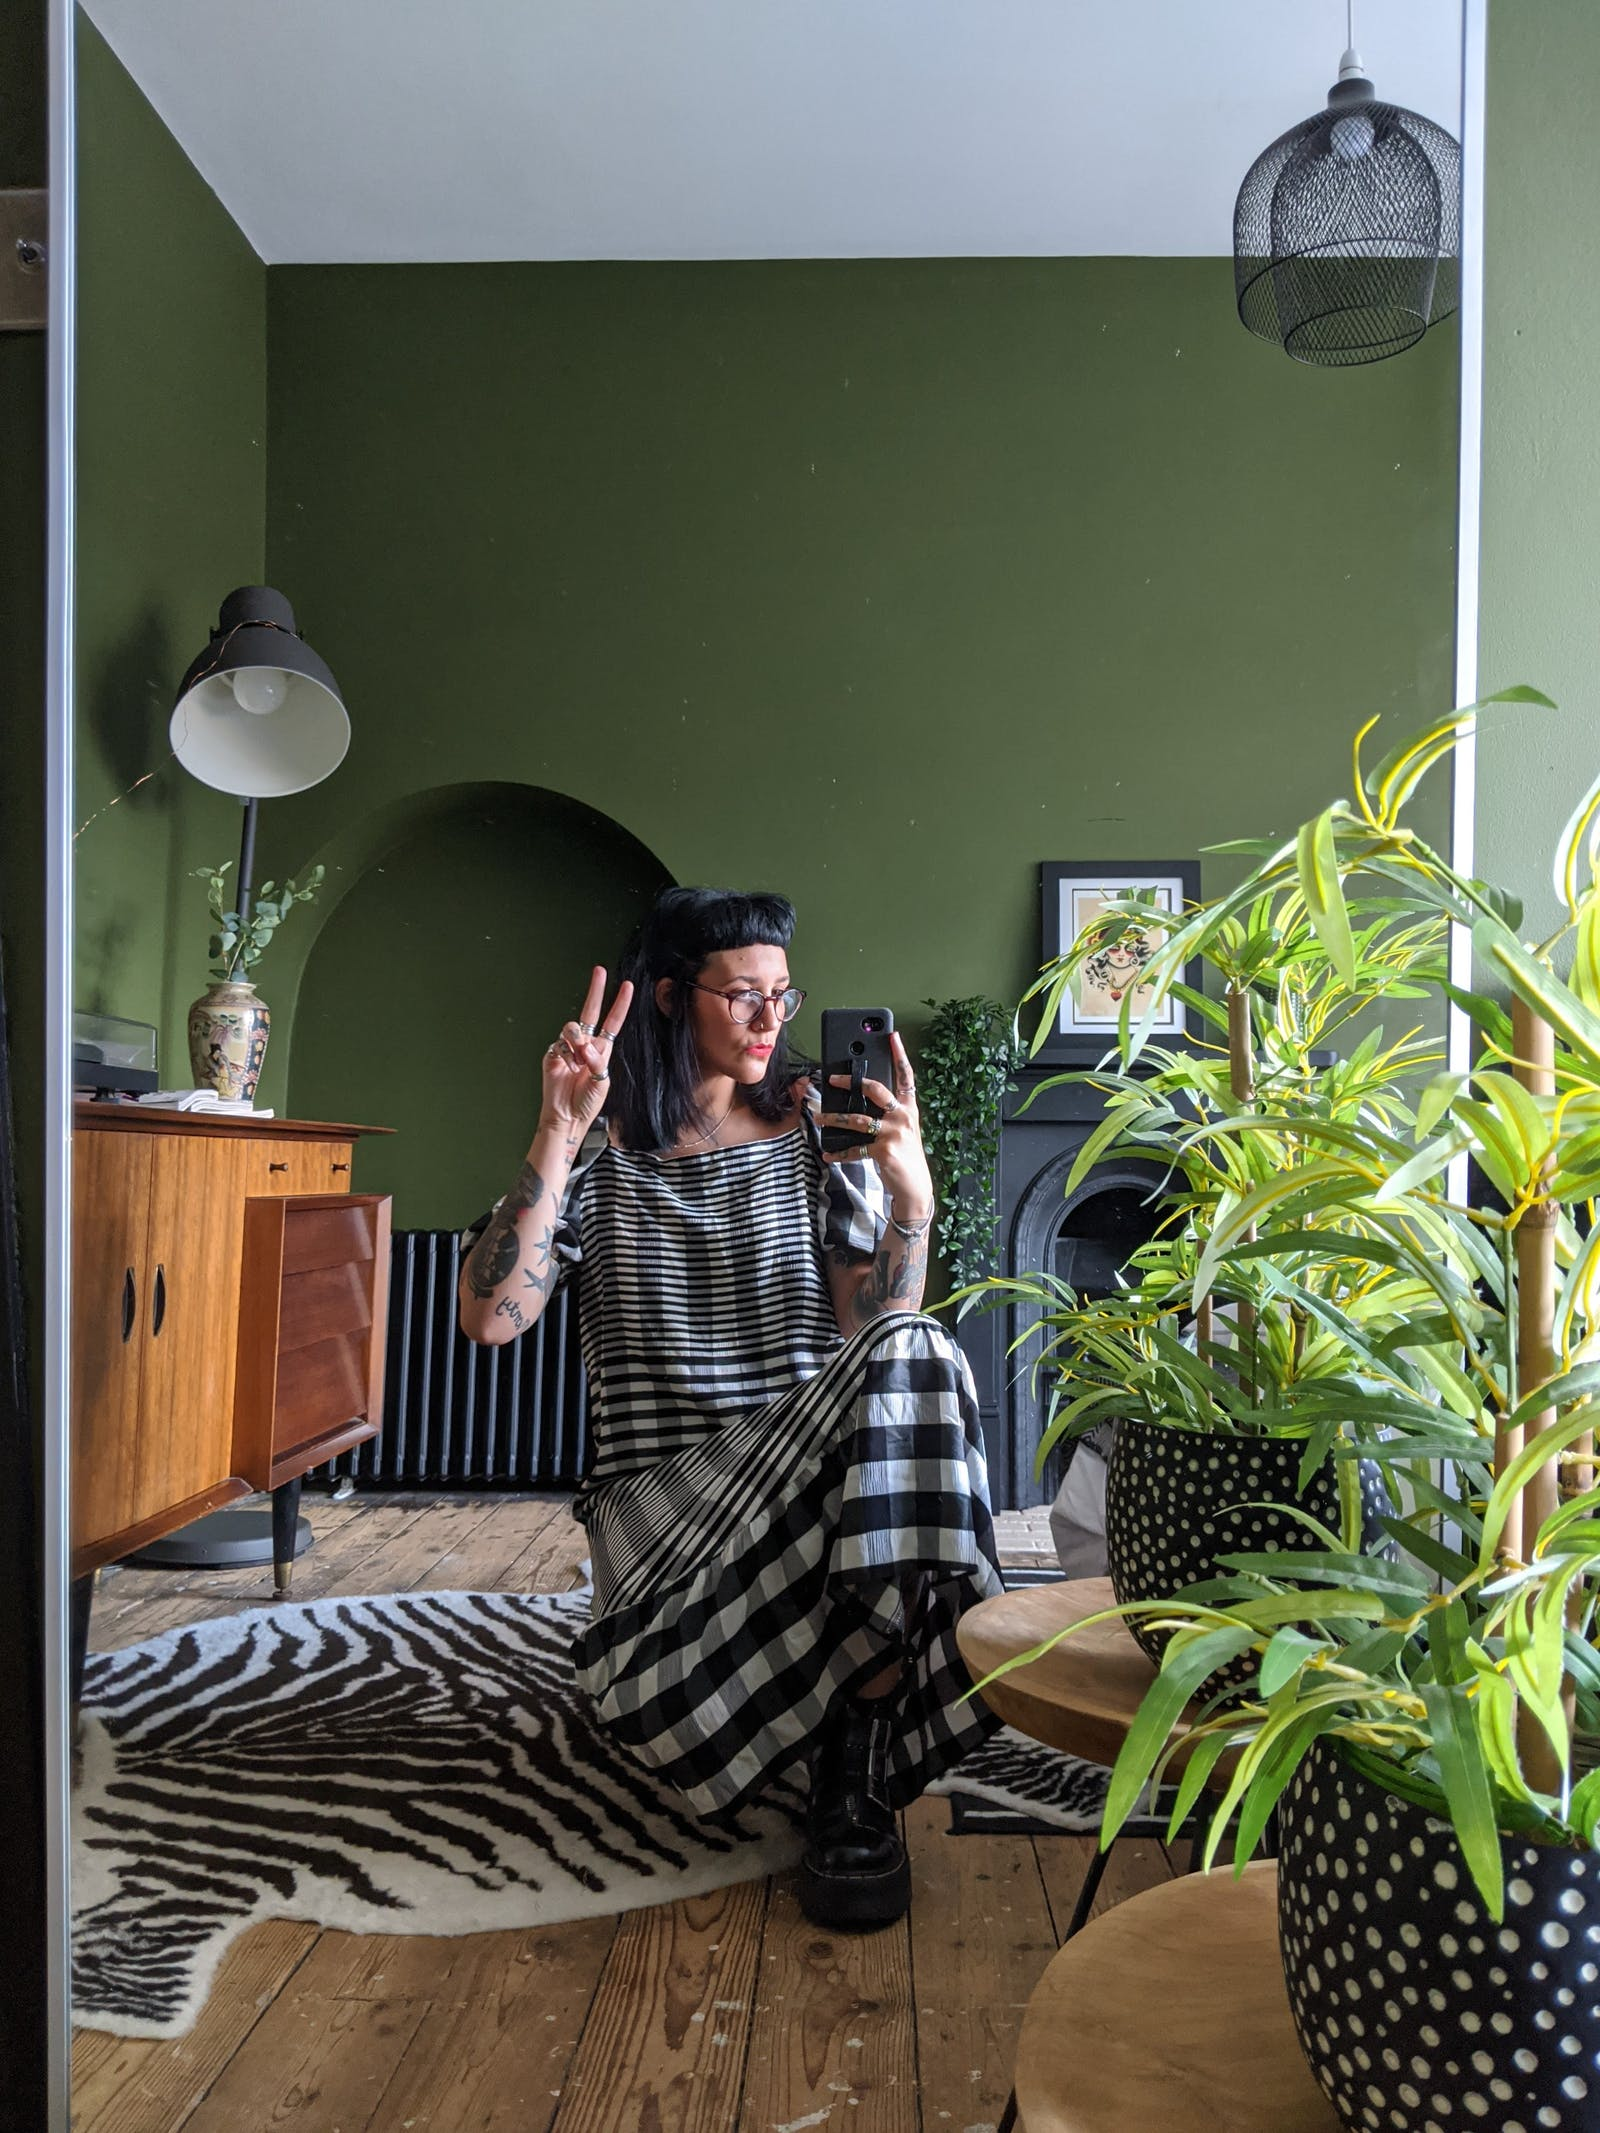 Rachel from @ourgreyhaven posing in her new bedroom painted in Lick Green 05, a beautiful forest green